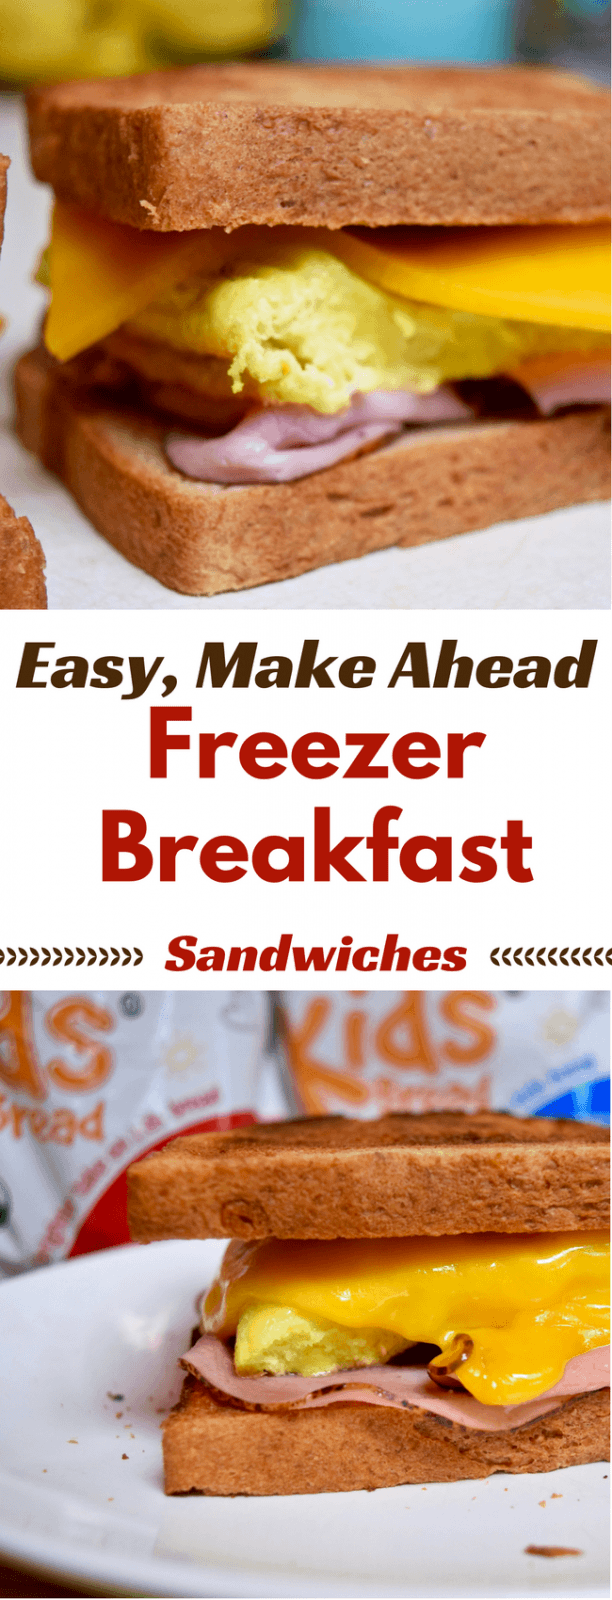 Create these Easy, Make Ahead Freezer Breakfast Sandwiches on busy weekday morning - You can have breakfast ready in just 2 minutes and give your family a hot, delicious meal before heading out to school. #rudiskidsbread #ad